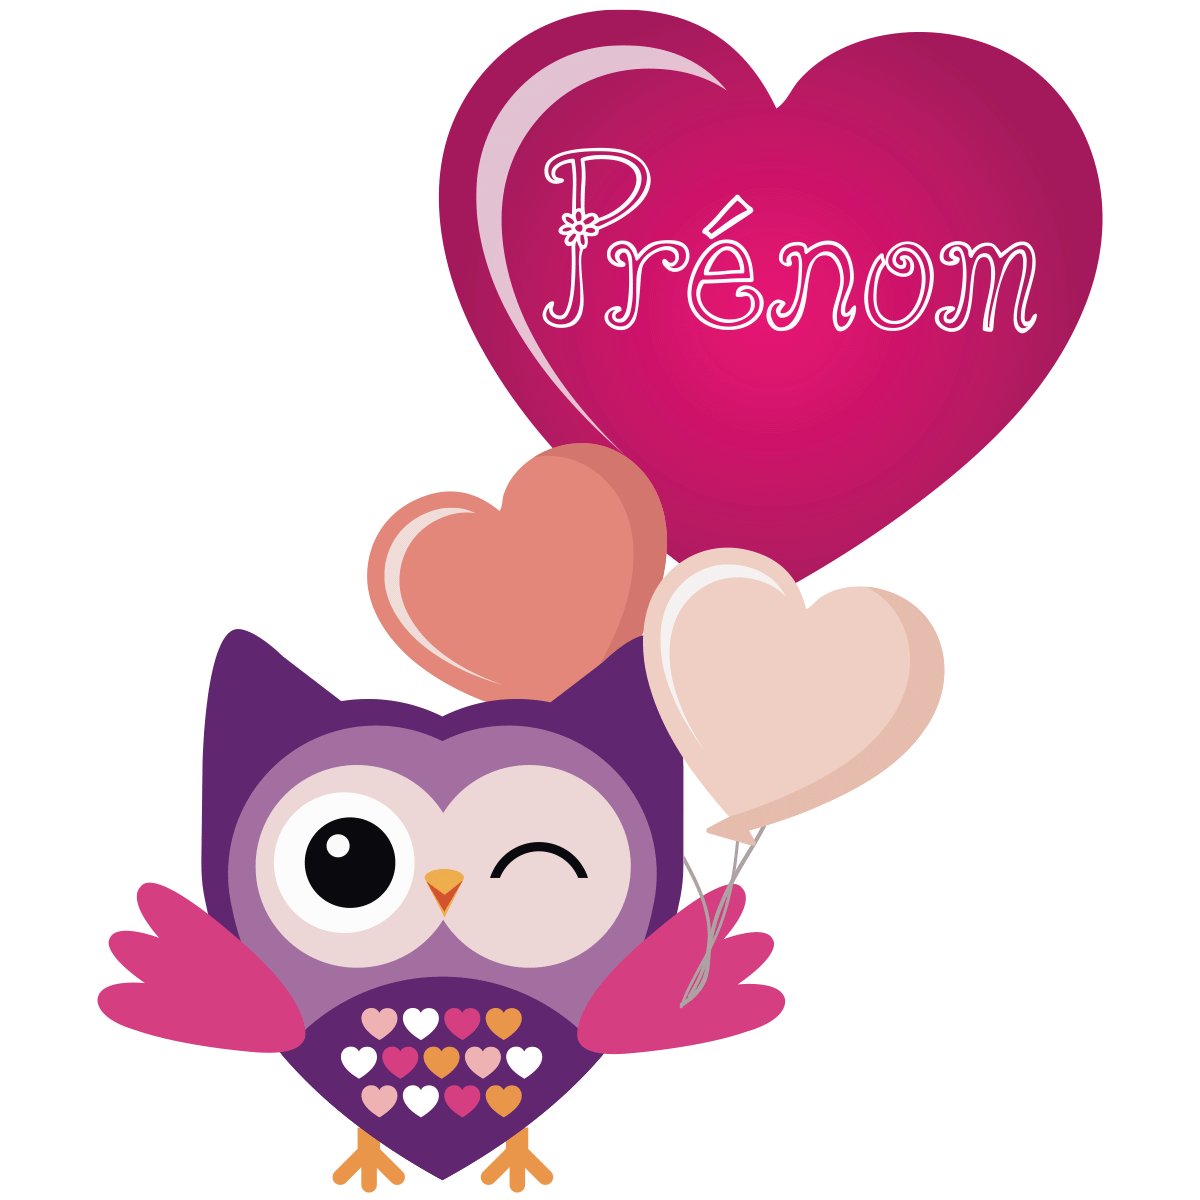 sticker pr nom personnalis hibou festif stickers filles coeurs ambiance sticker. Black Bedroom Furniture Sets. Home Design Ideas